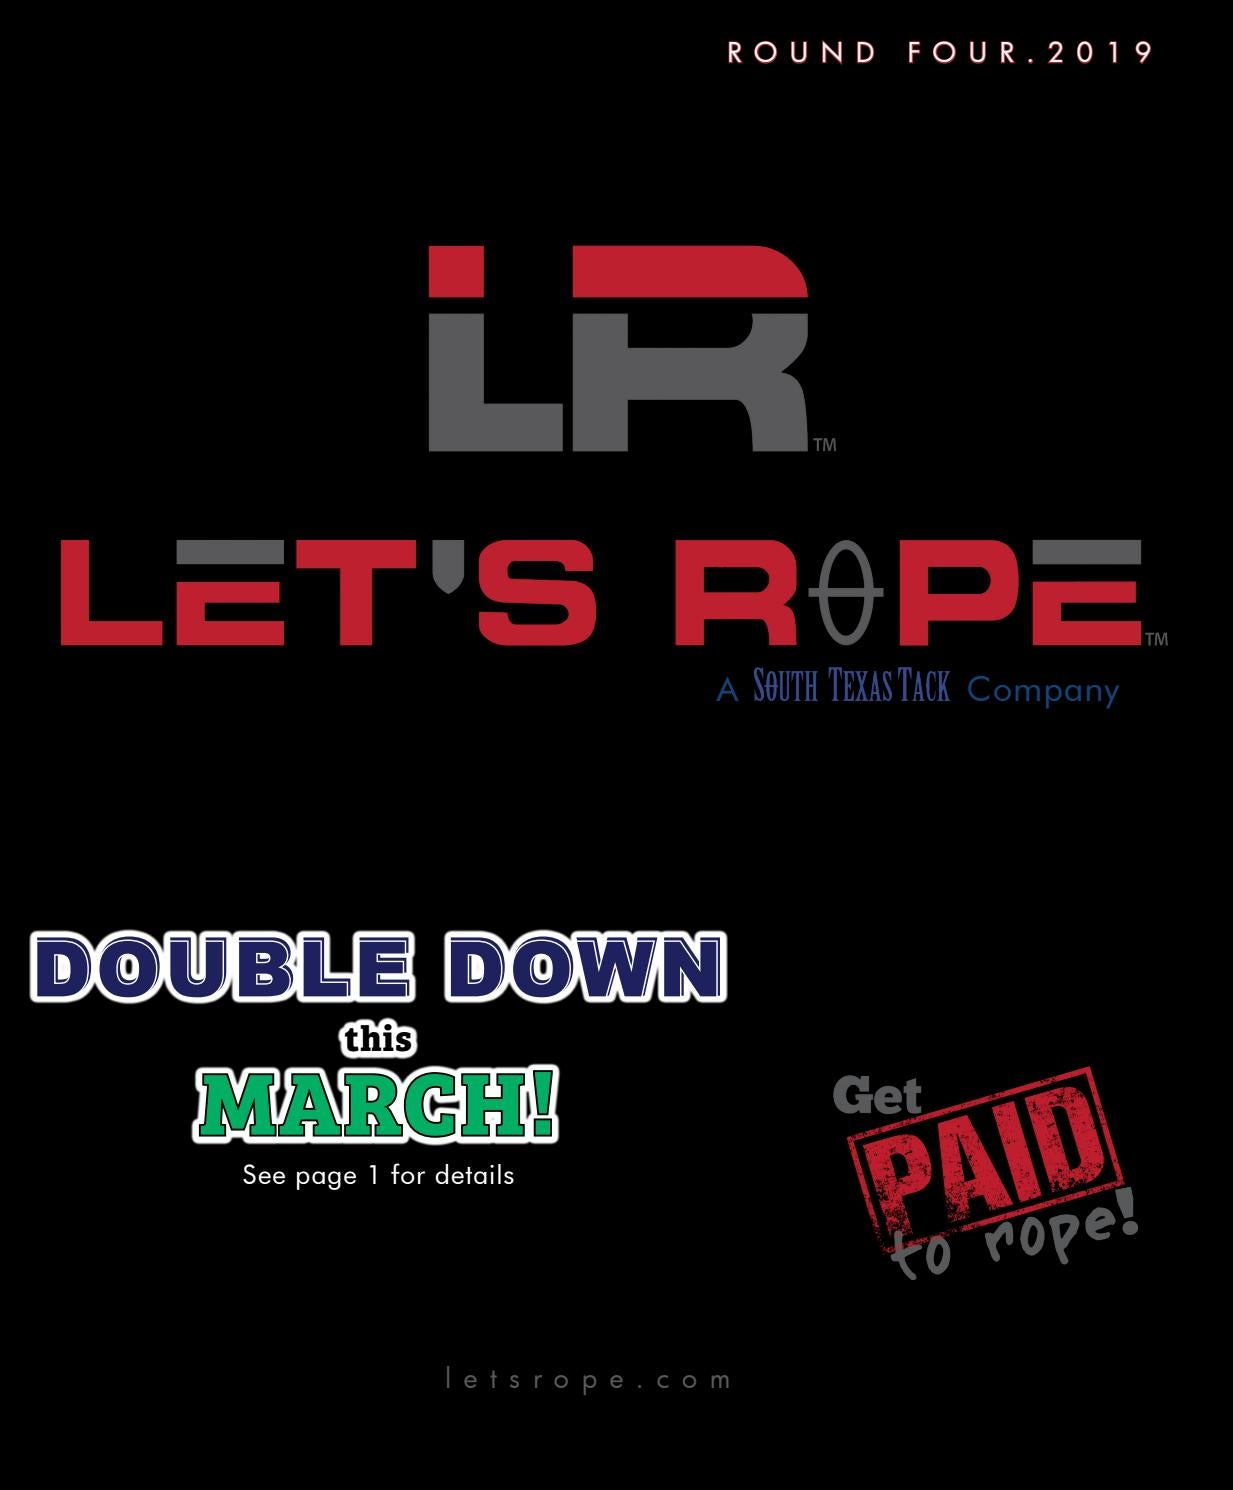 d45788703cb Let's Rope - Round 4 - Spring 2019 by southtexastack - issuu